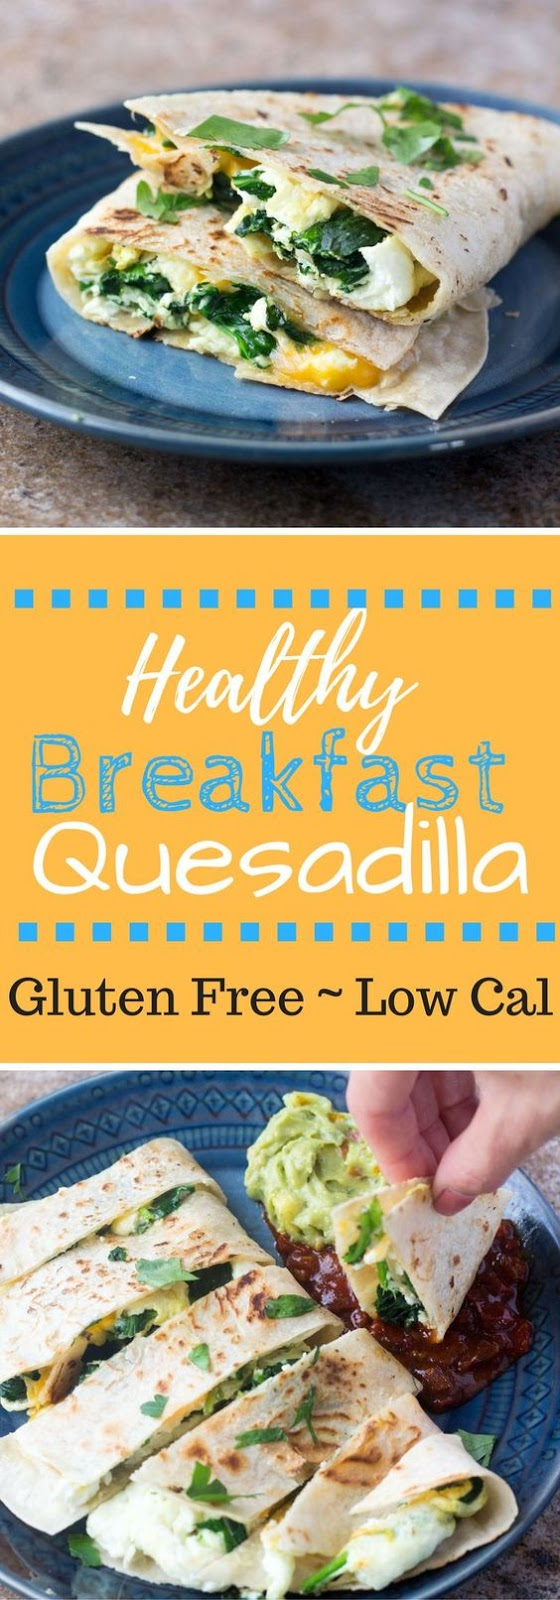 HEALTHY BREAKFAST QUESADILLA #recipes #healthybreakfast #breakfastrecipes #healthybreakfastrecipes #food #foodporn #healthy #yummy #instafood #foodie #delicious #dinner #breakfast #dessert #lunch #vegan #cake #eatclean #homemade #diet #healthyfood #cleaneating #foodstagram